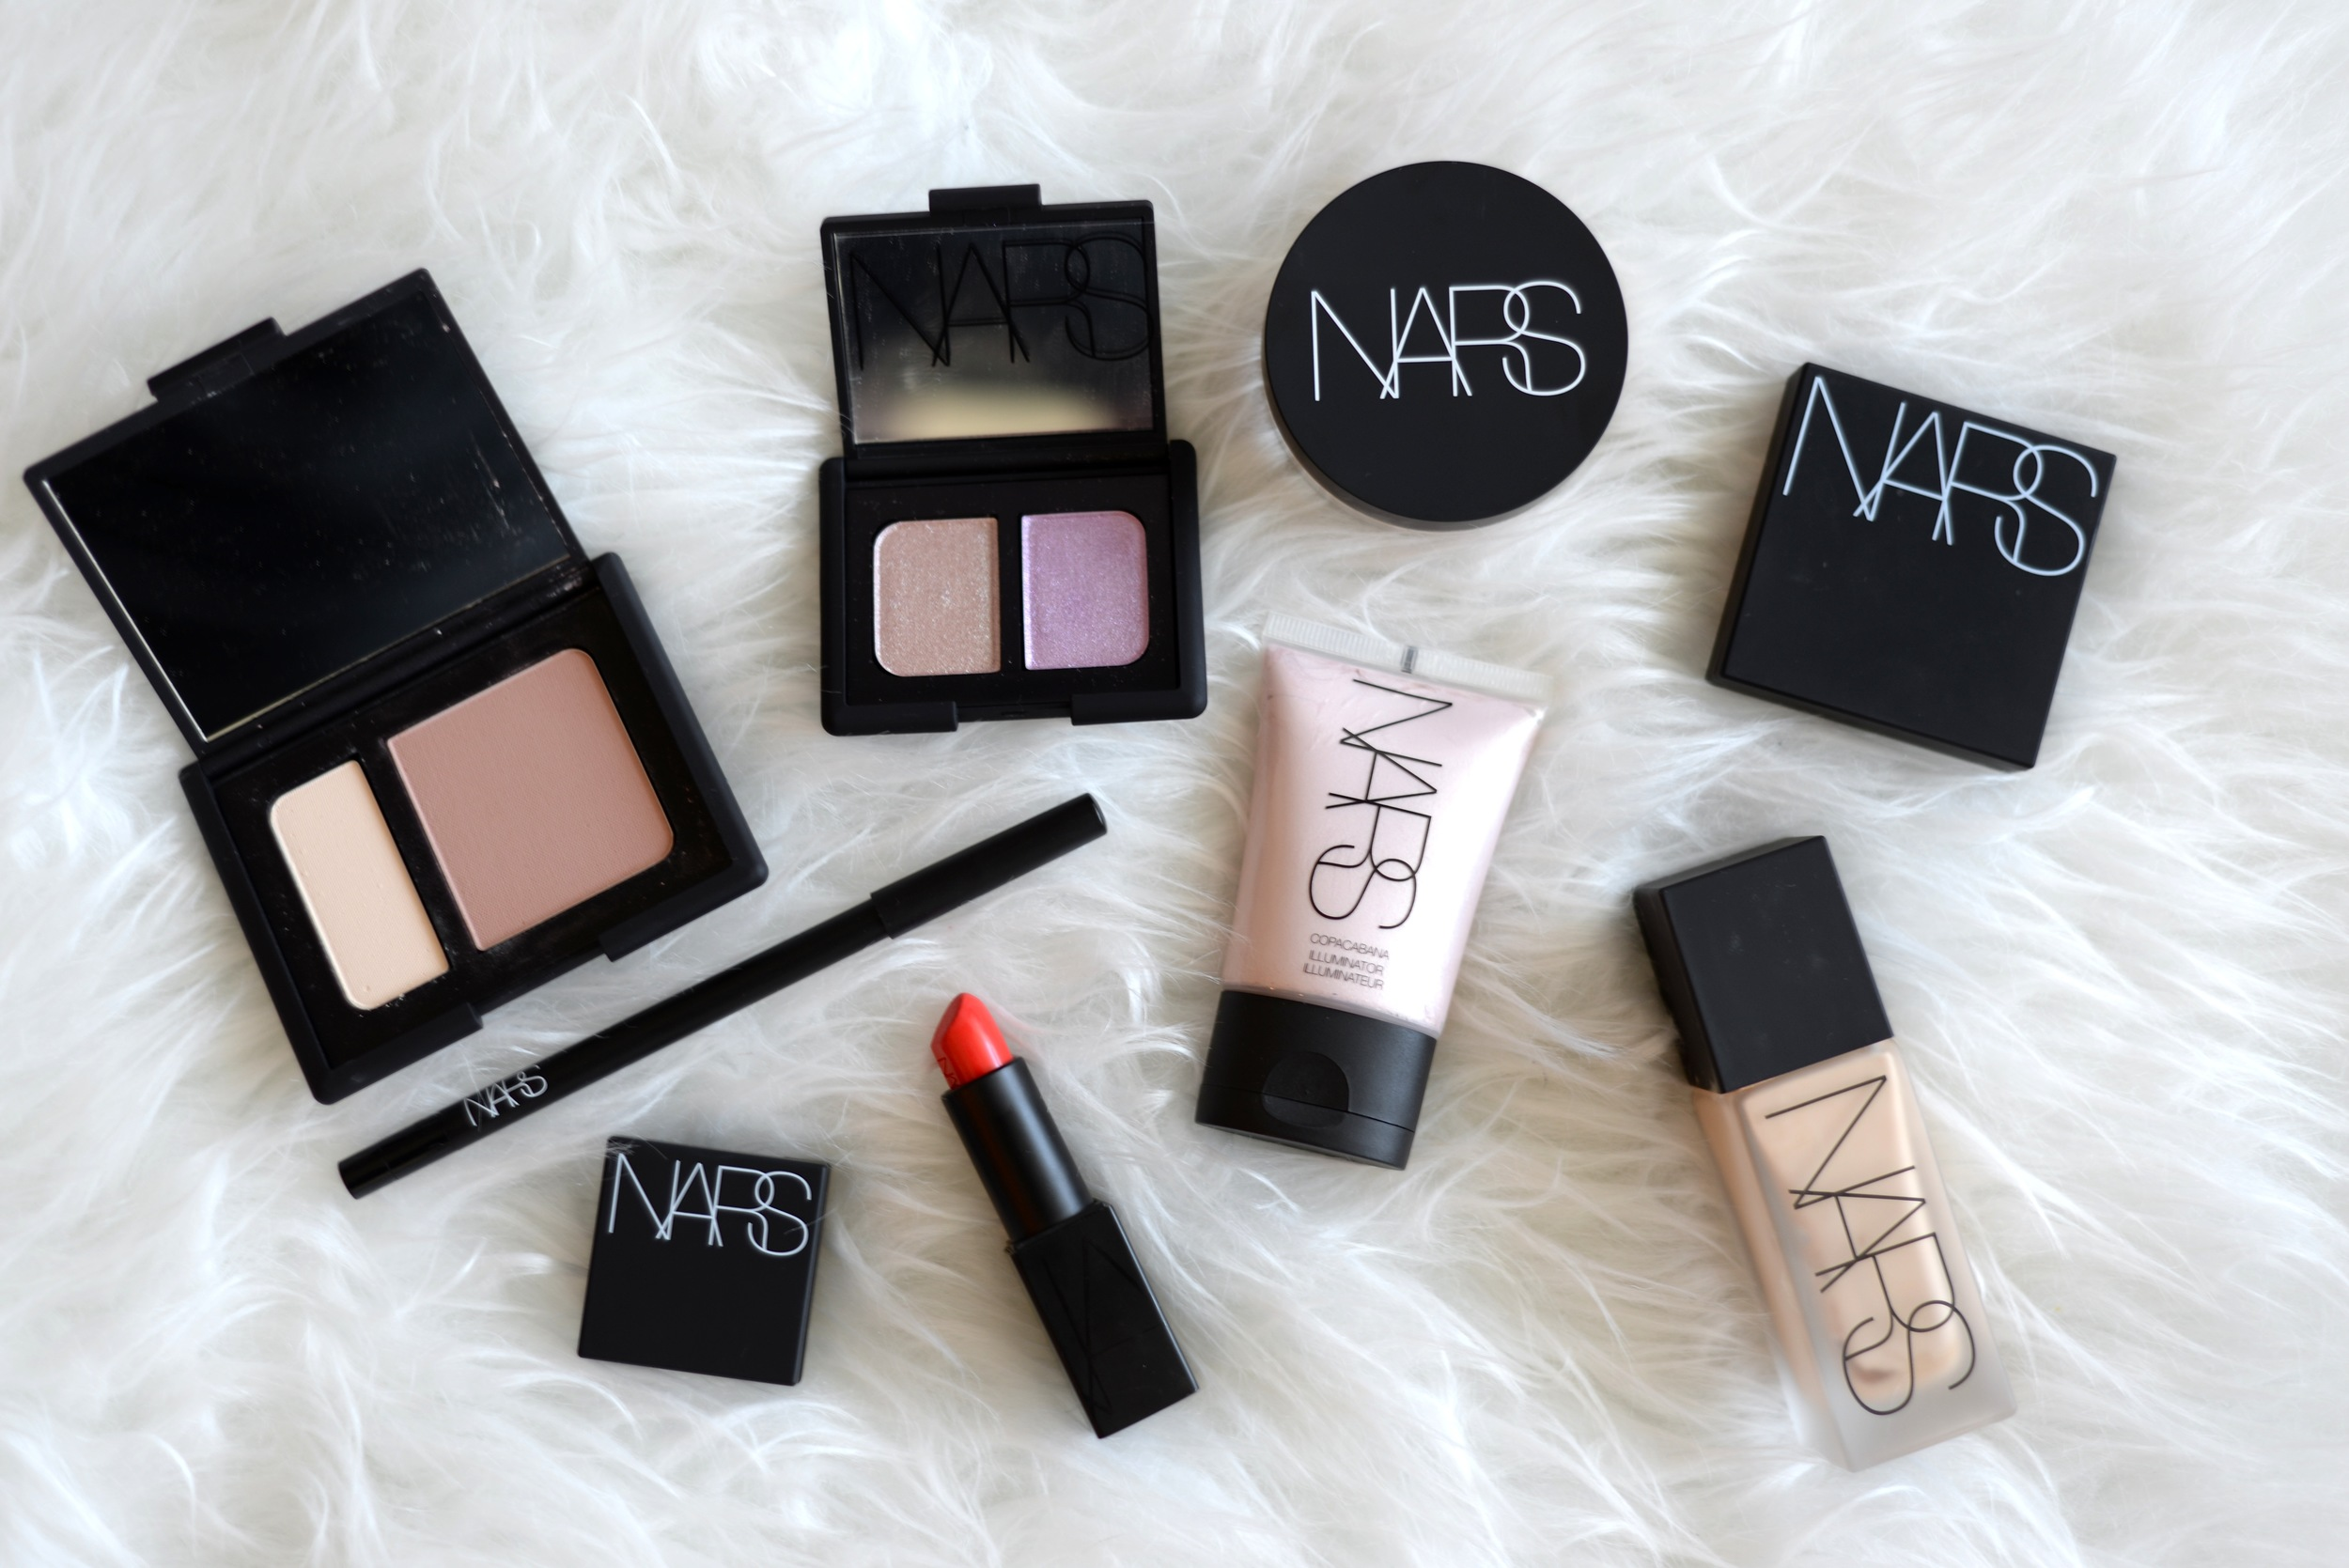 nars makeup, nars olympia blush and contour duo, nars illuminator copacabana, nars weightless foundation, nars x christopher kane eyeshadow, nars audacious lipstick